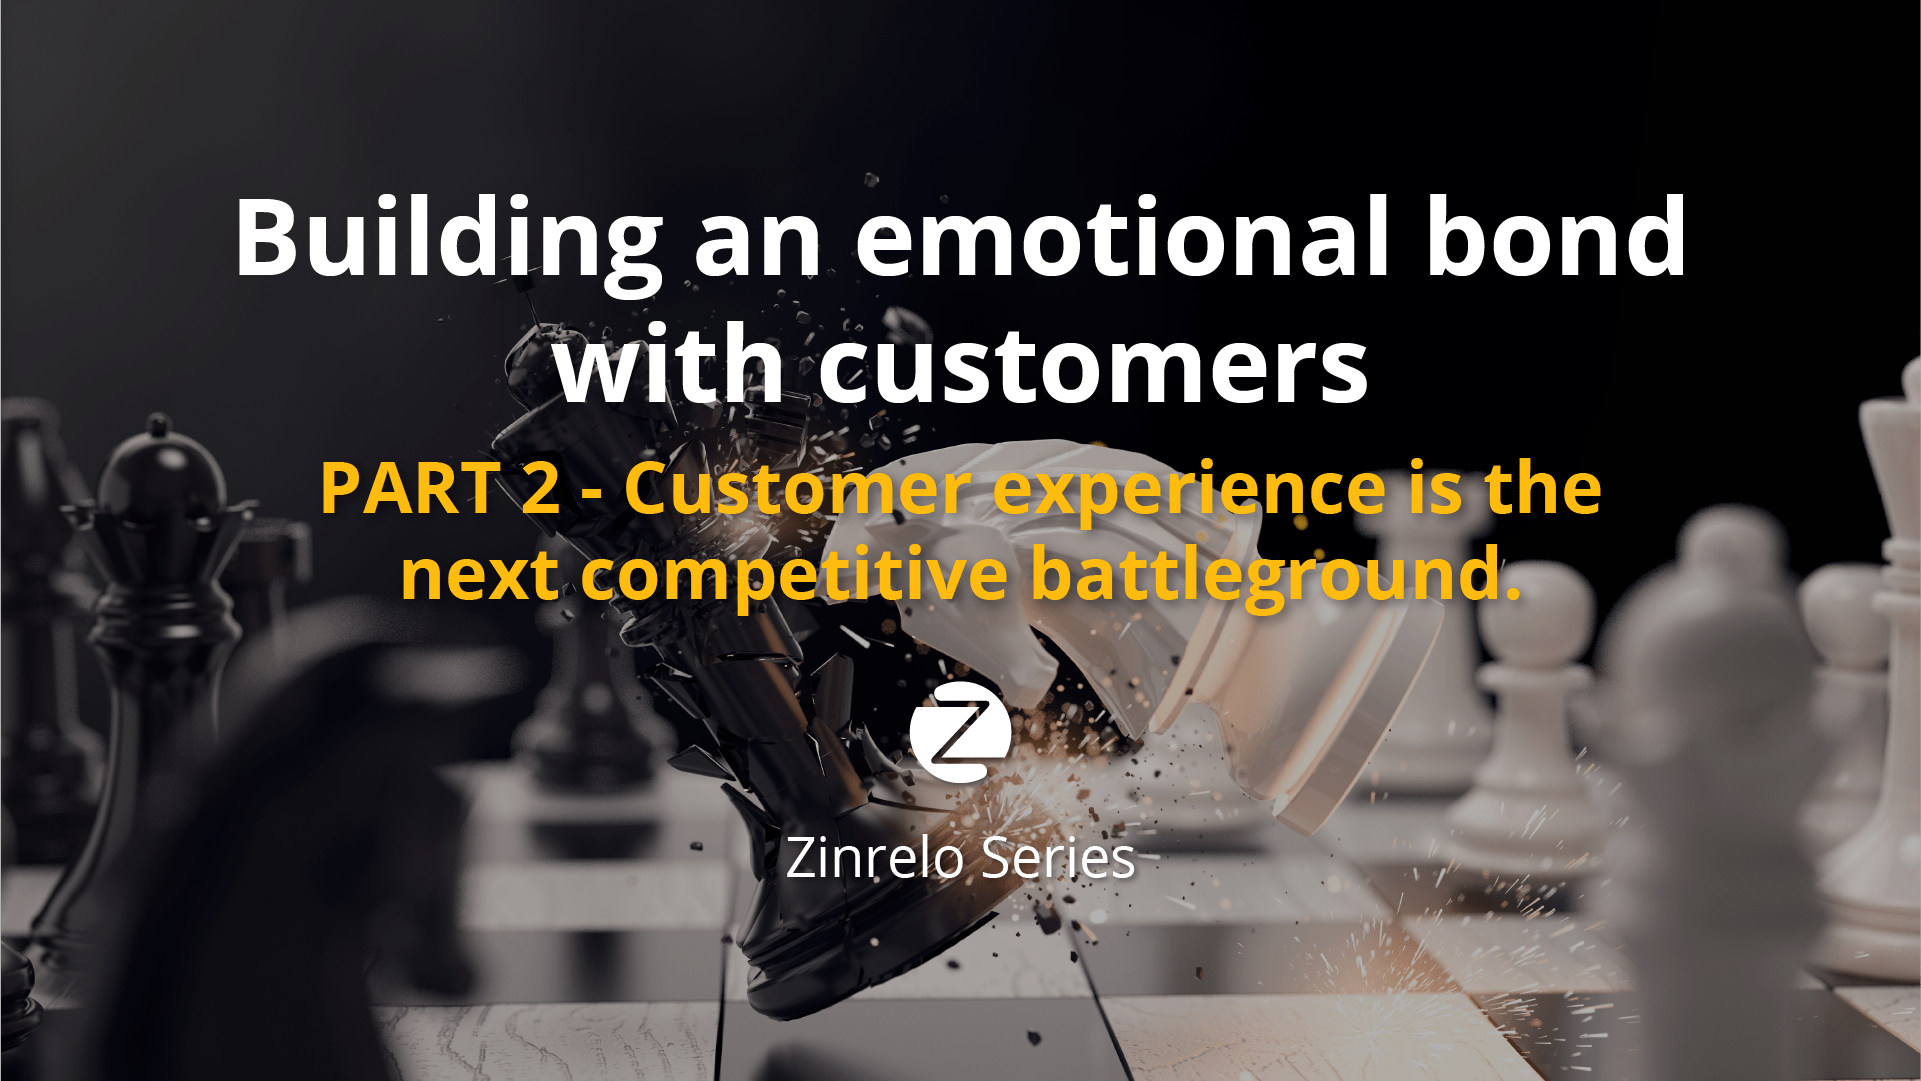 Part 2 – Customer experience is the next competitive battleground